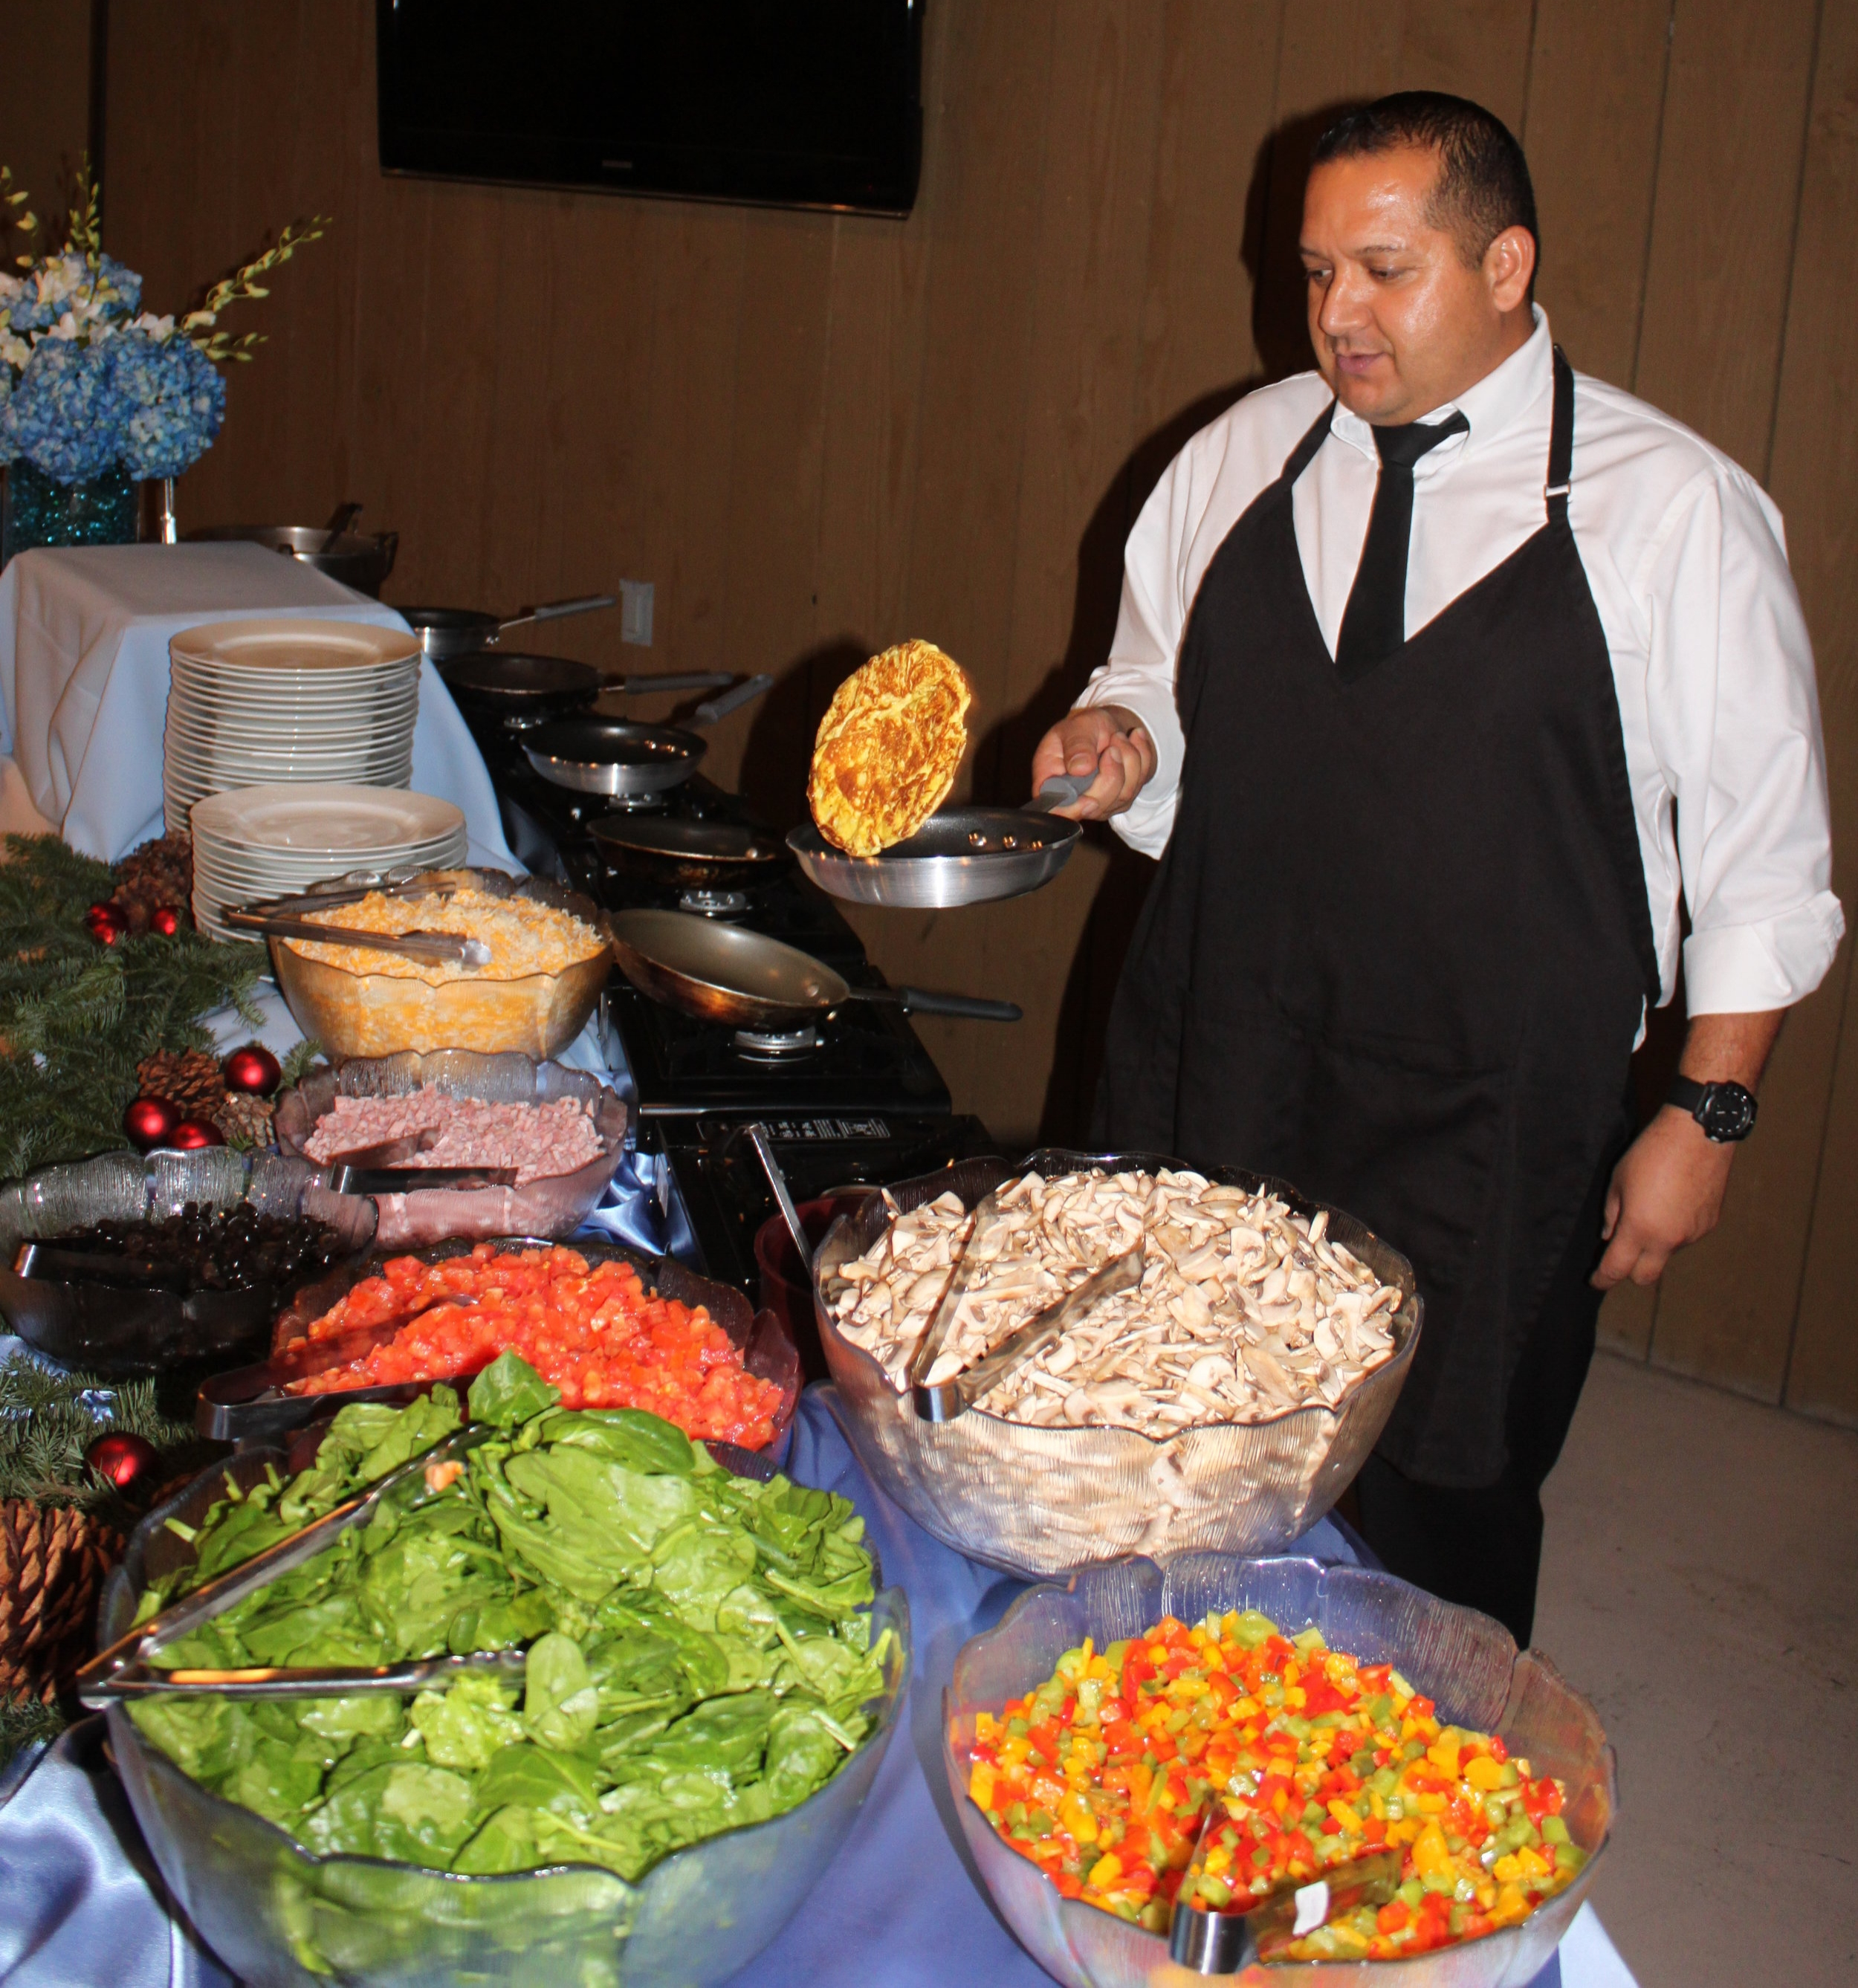 Omelettes Made to Order - by our highly trained and professional chefs